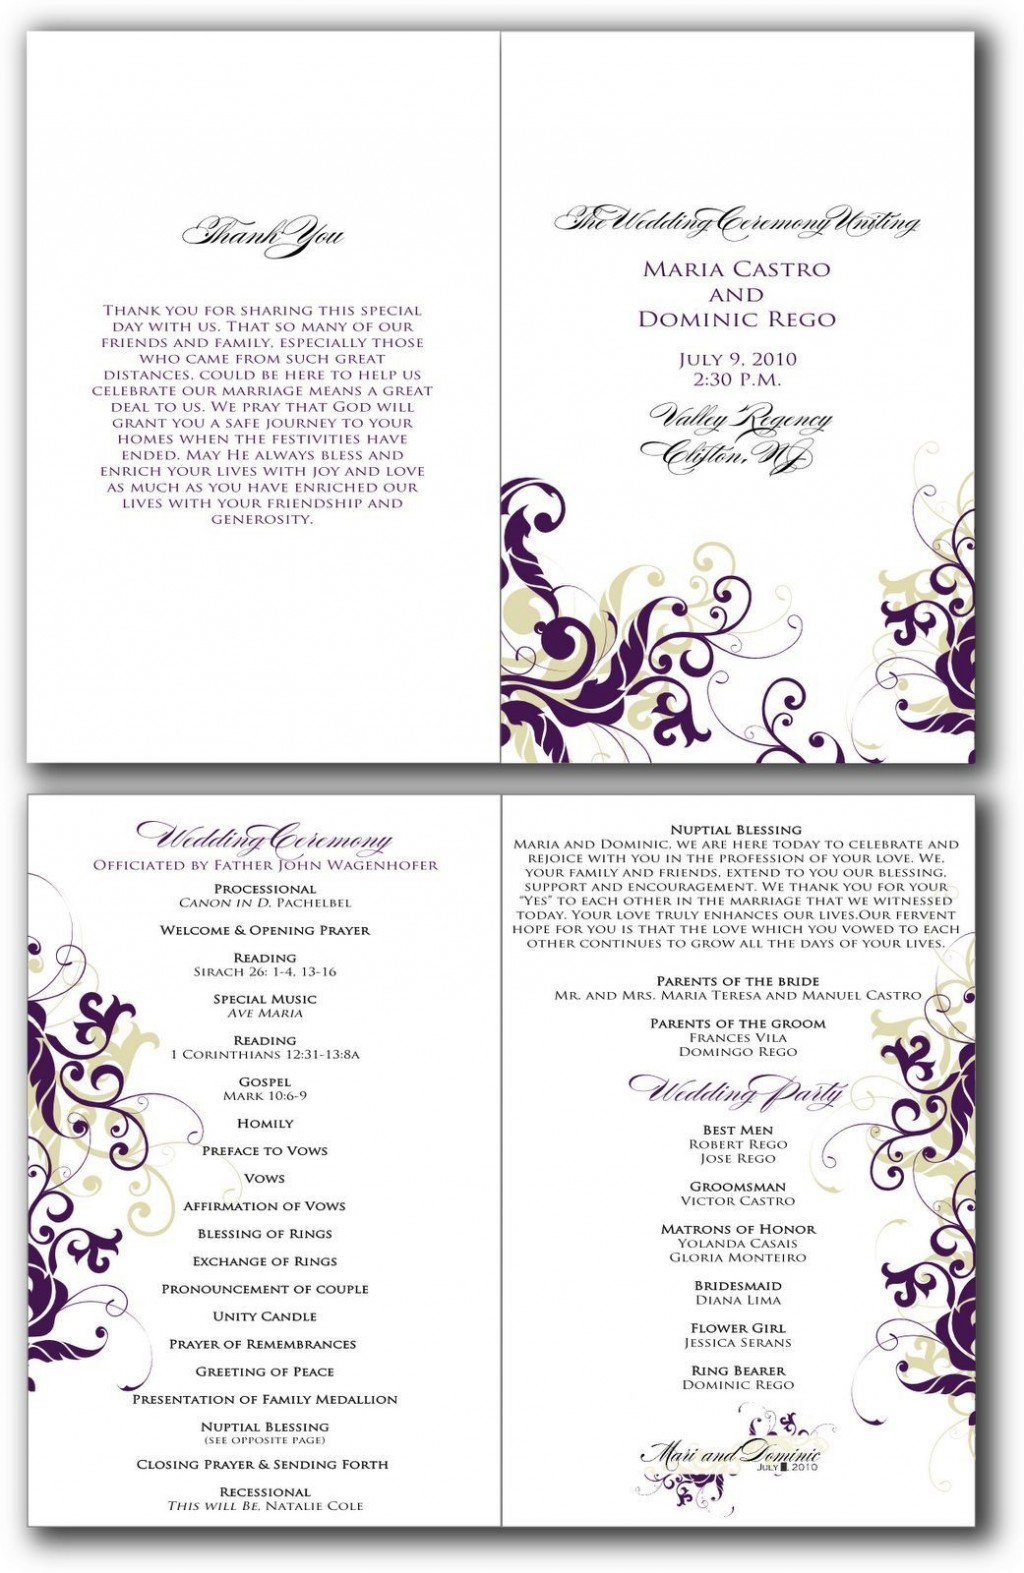 002 Impressive Free Church Program Template Design Concept Large